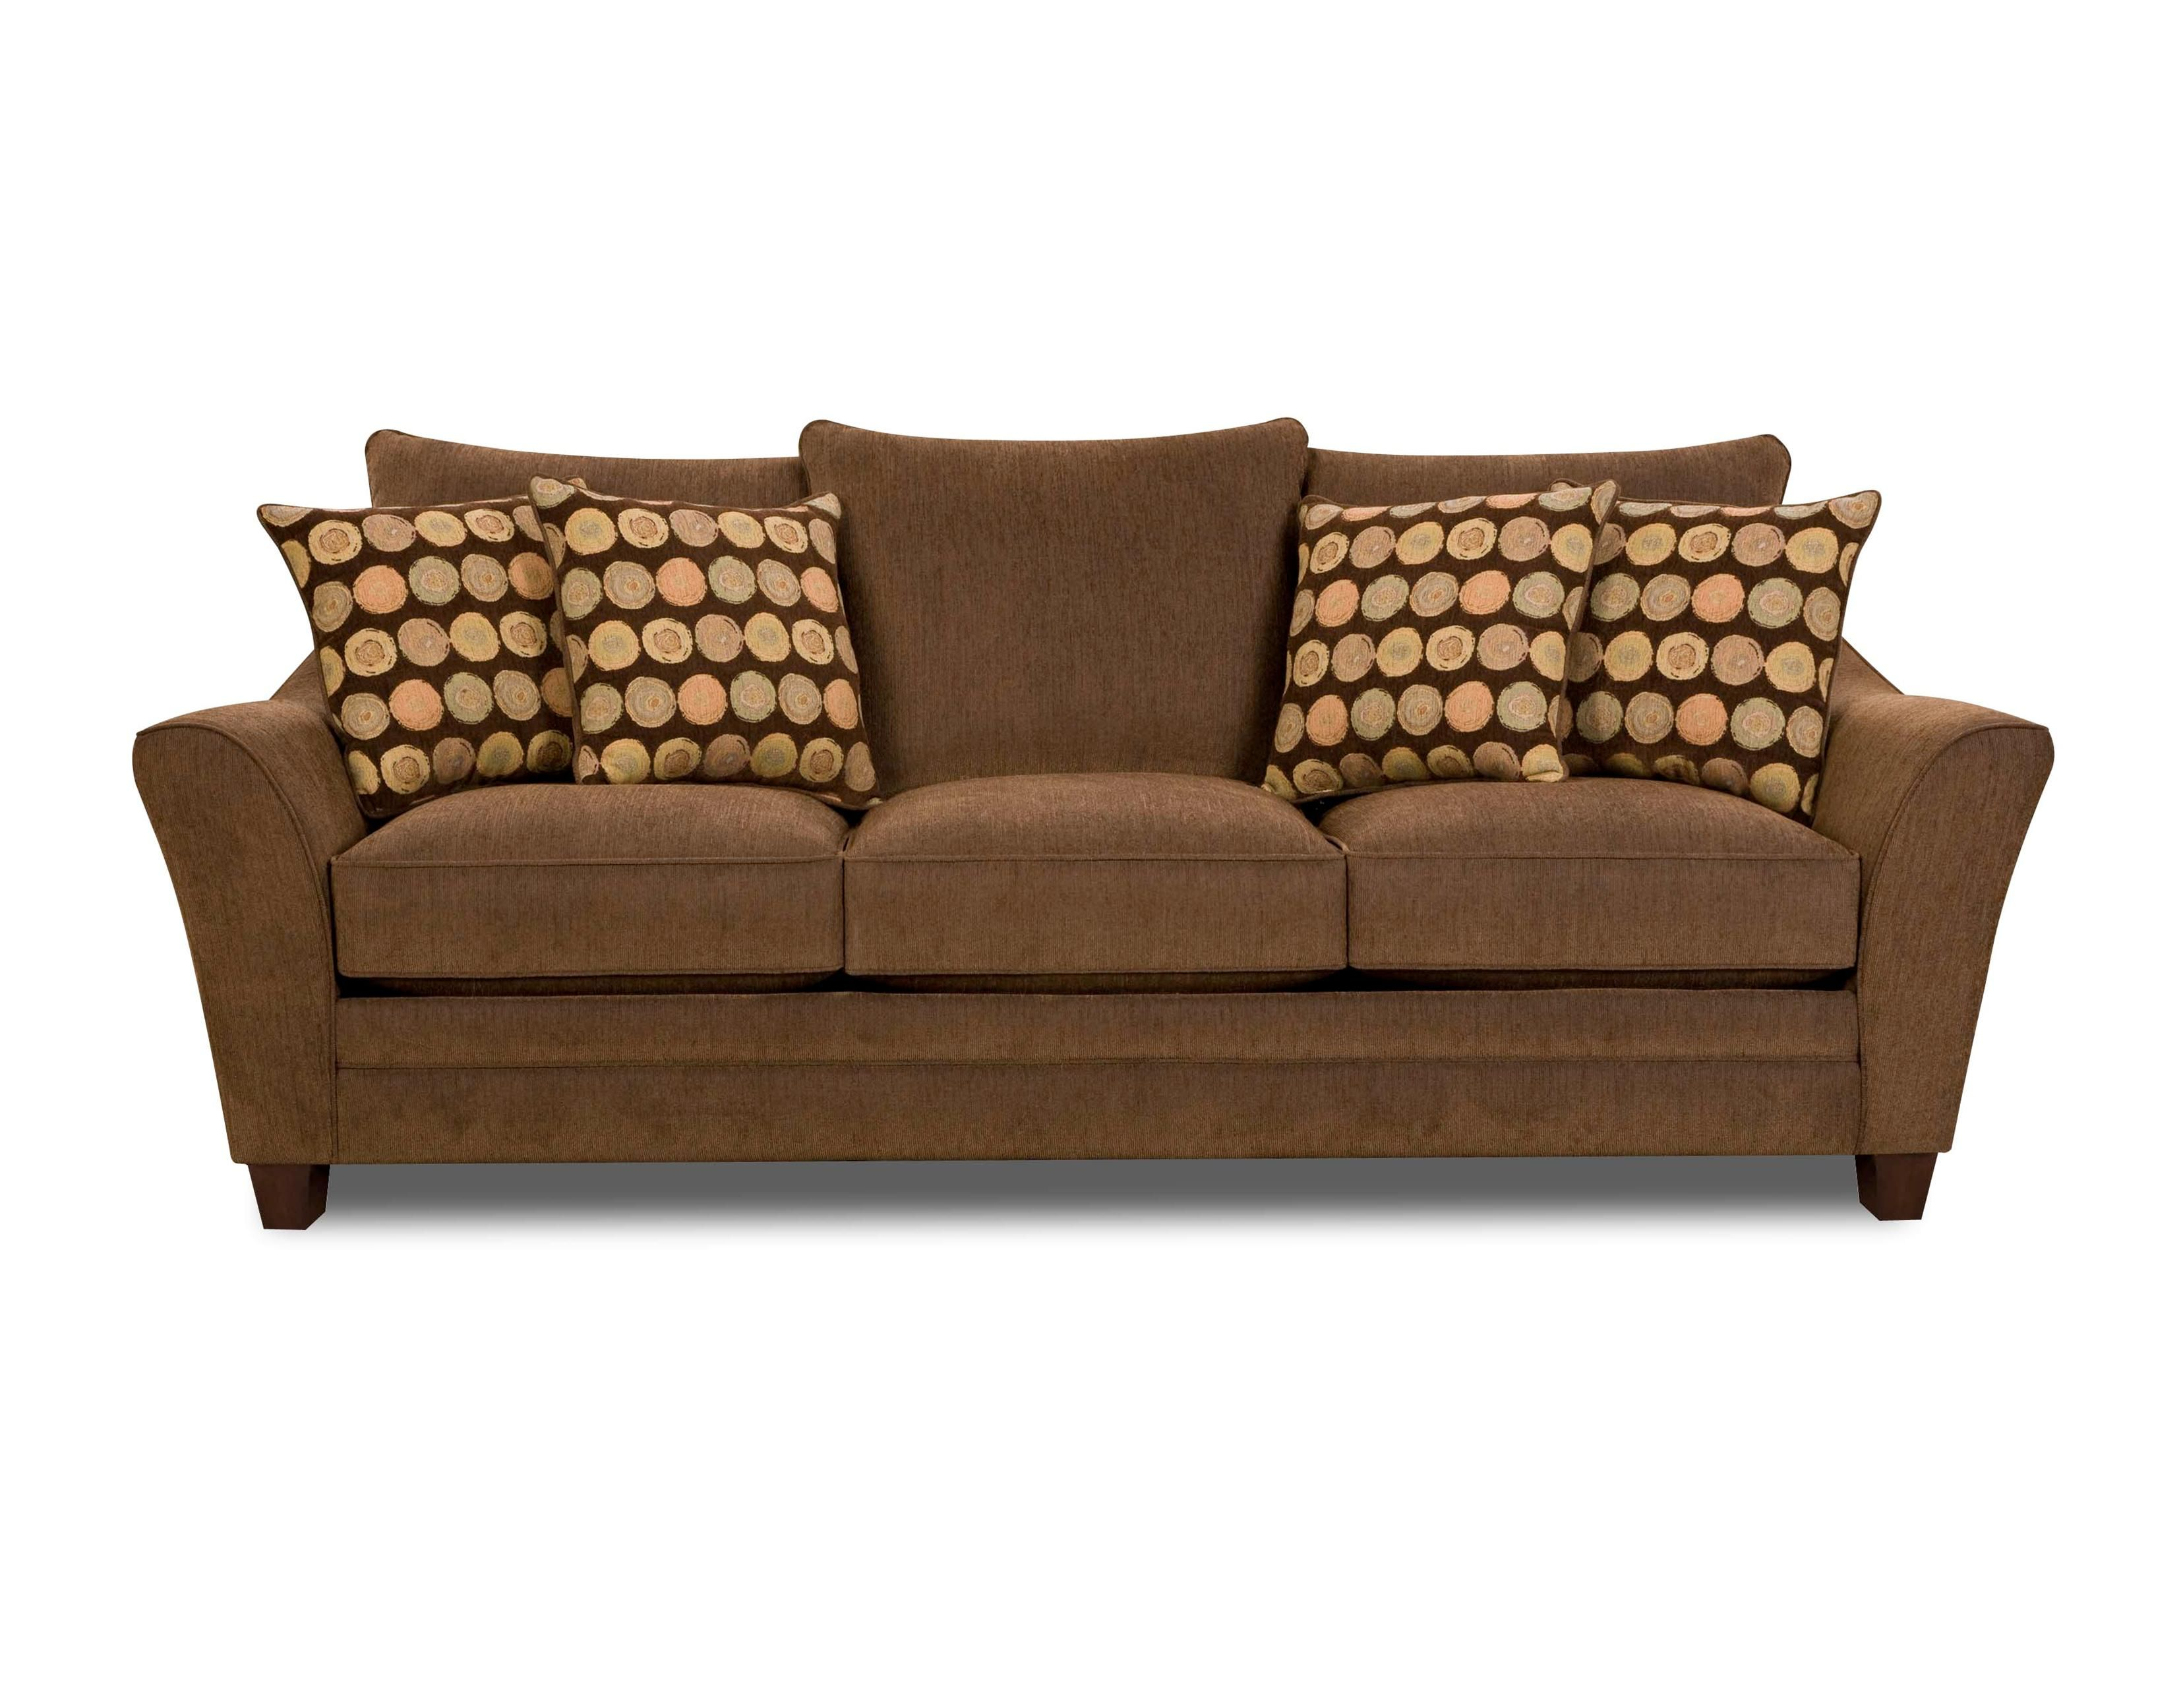 High Quality A Local Favorite Here At The Great American Home Store. Sporty Mocha Sofa  By Corinthian